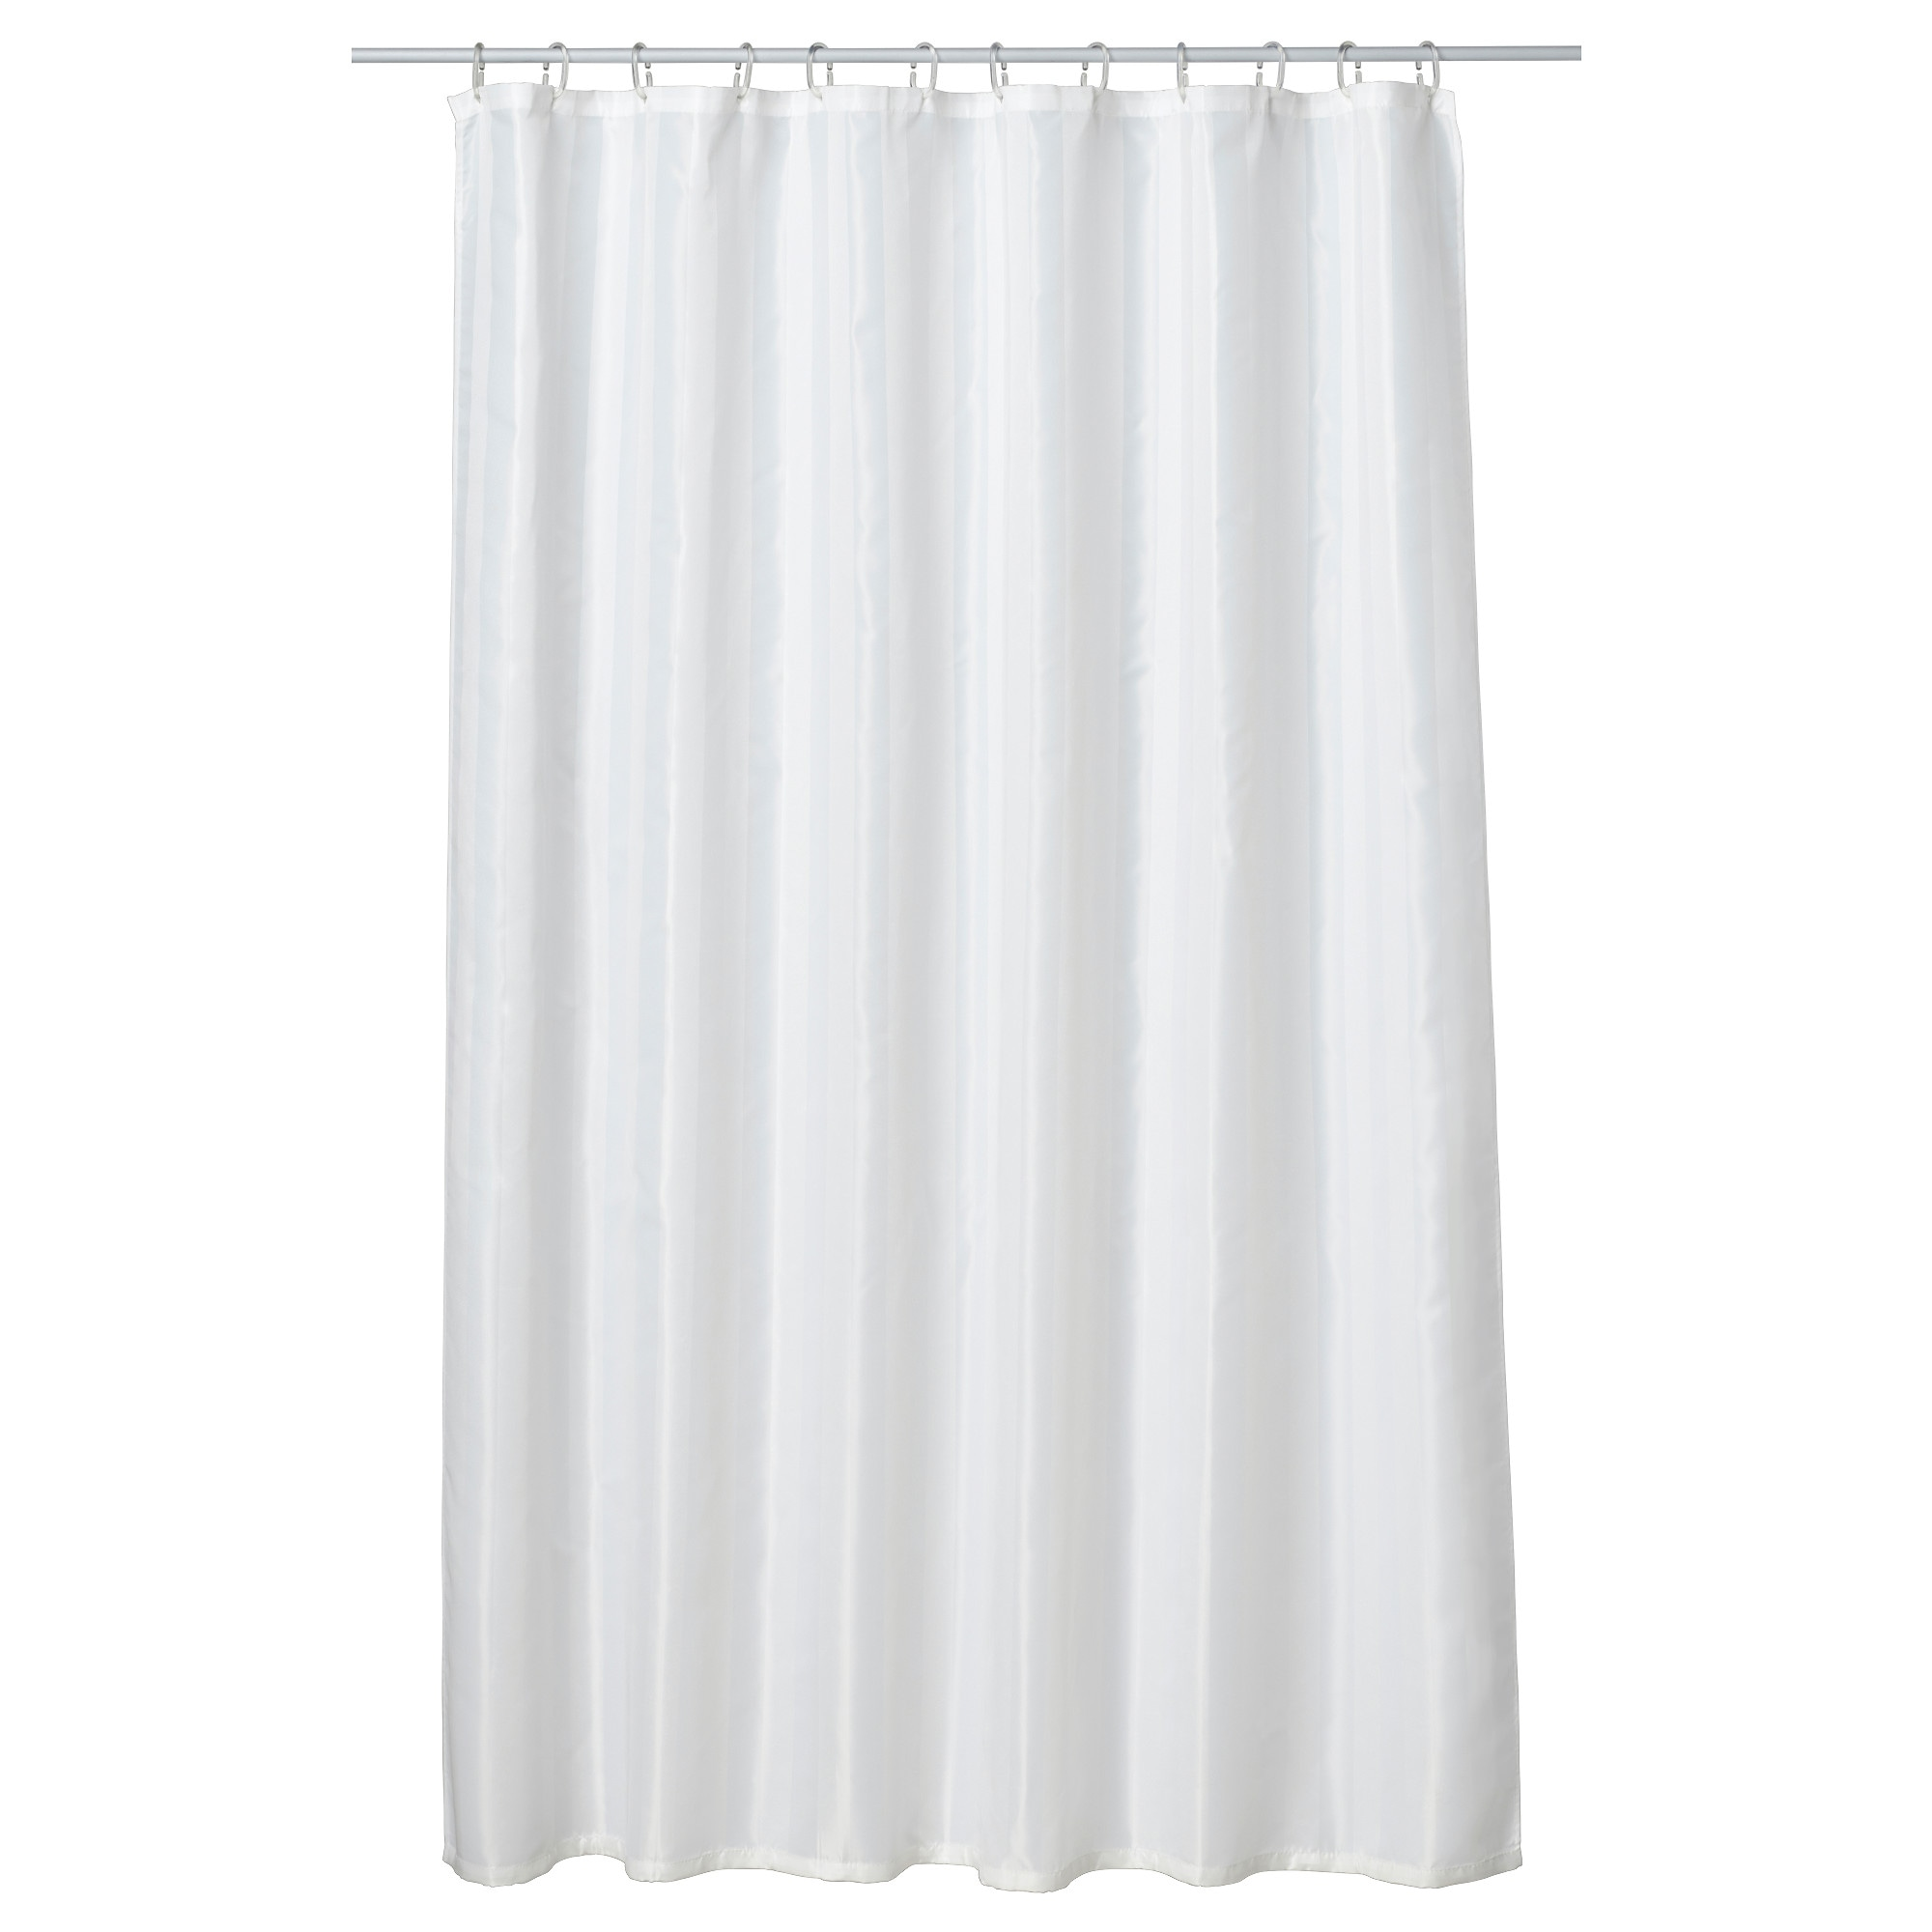 Mustache shower curtain - Saltgrund Shower Curtain White Length 71 Width 71 Area 34 88